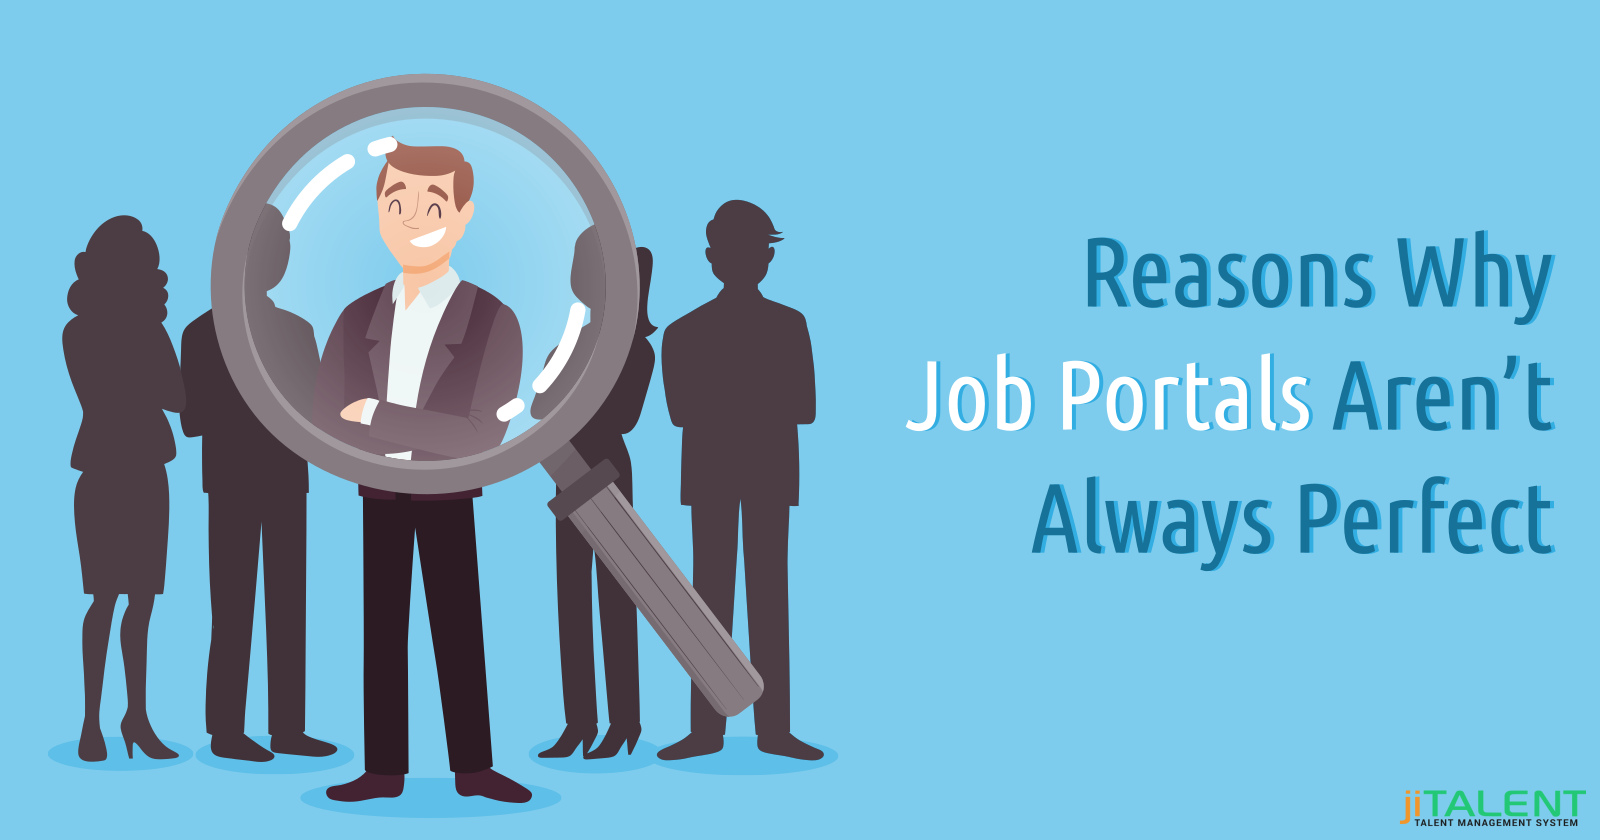 Reasons Why Job Portals Aren't Always Perfect